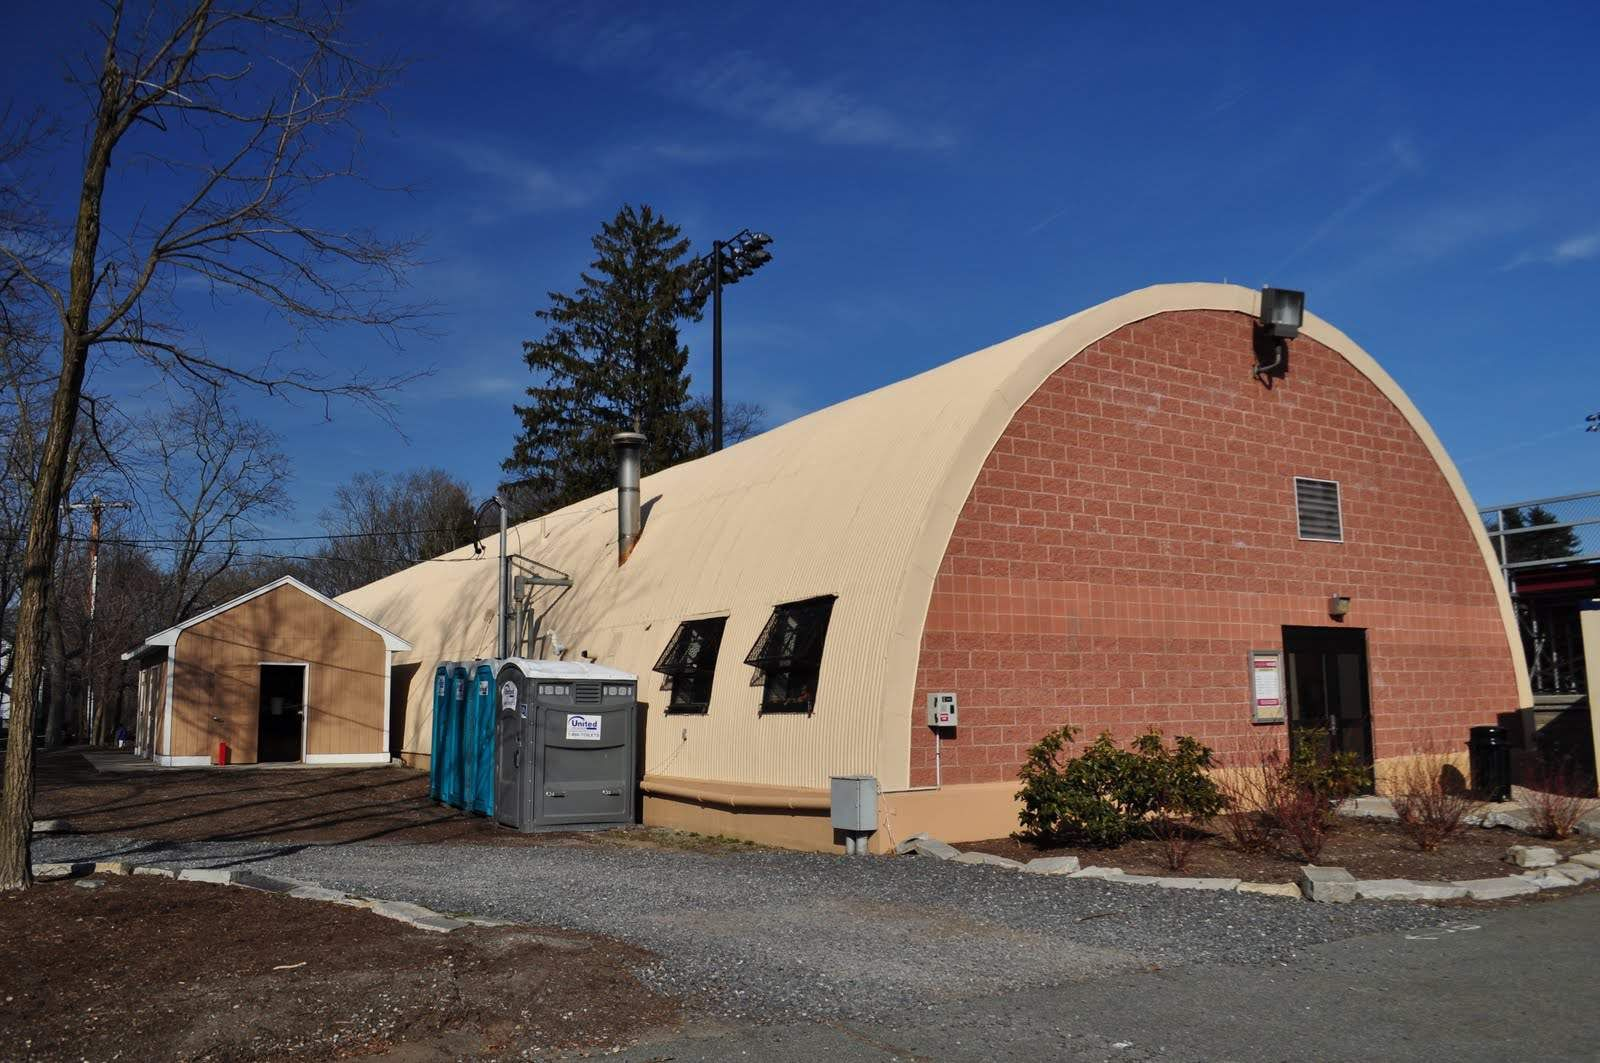 Military Surplus Quonset Huts For Sale >> 11 Things To Know Before Building A Quonset Hut Homes